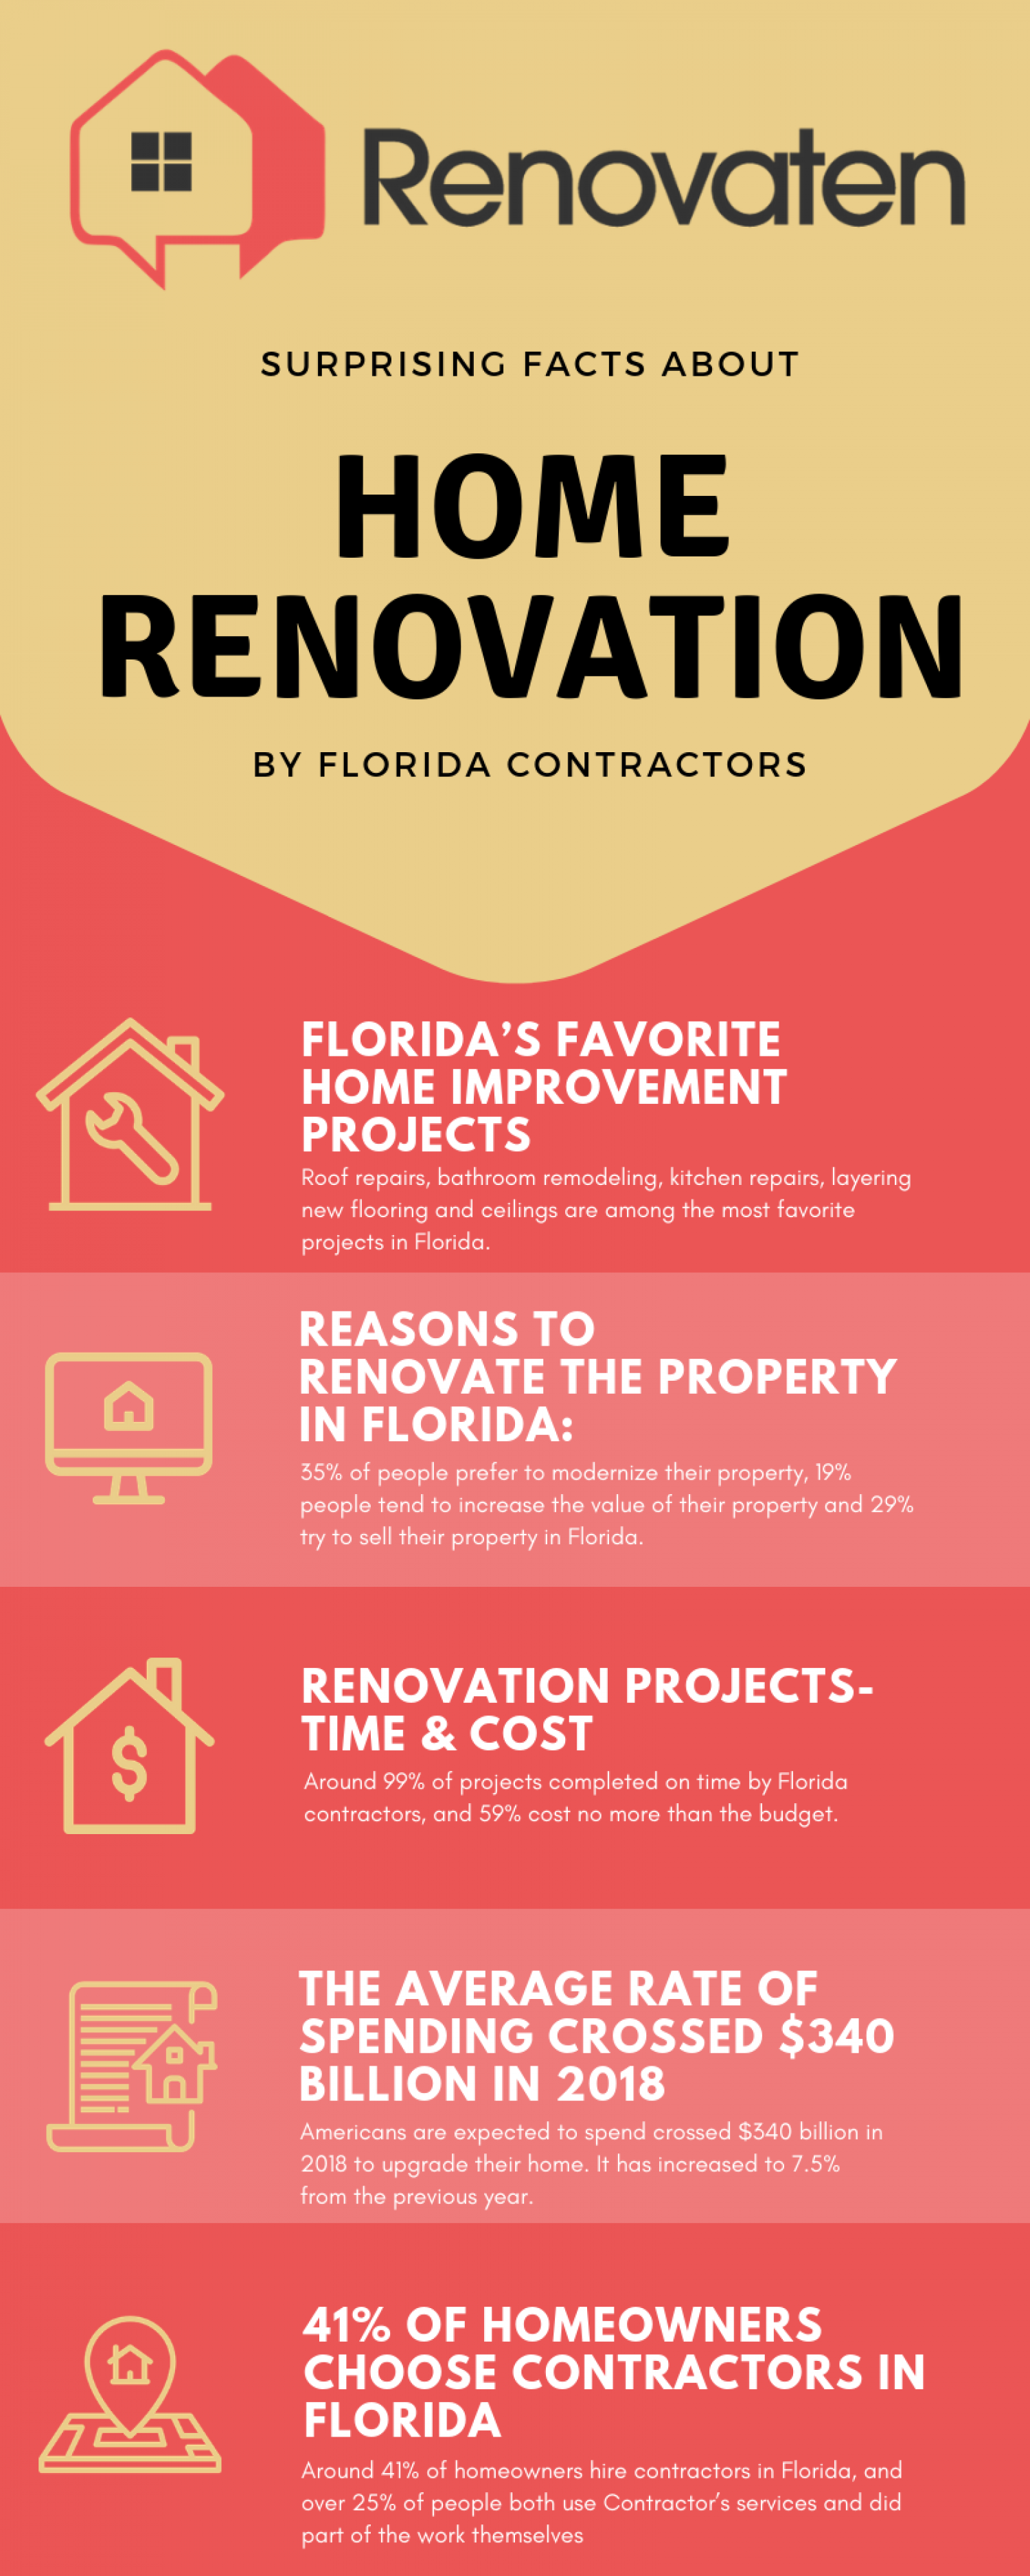 5 Surprising Facts about Home Renovation by Florida Contractors Infographic